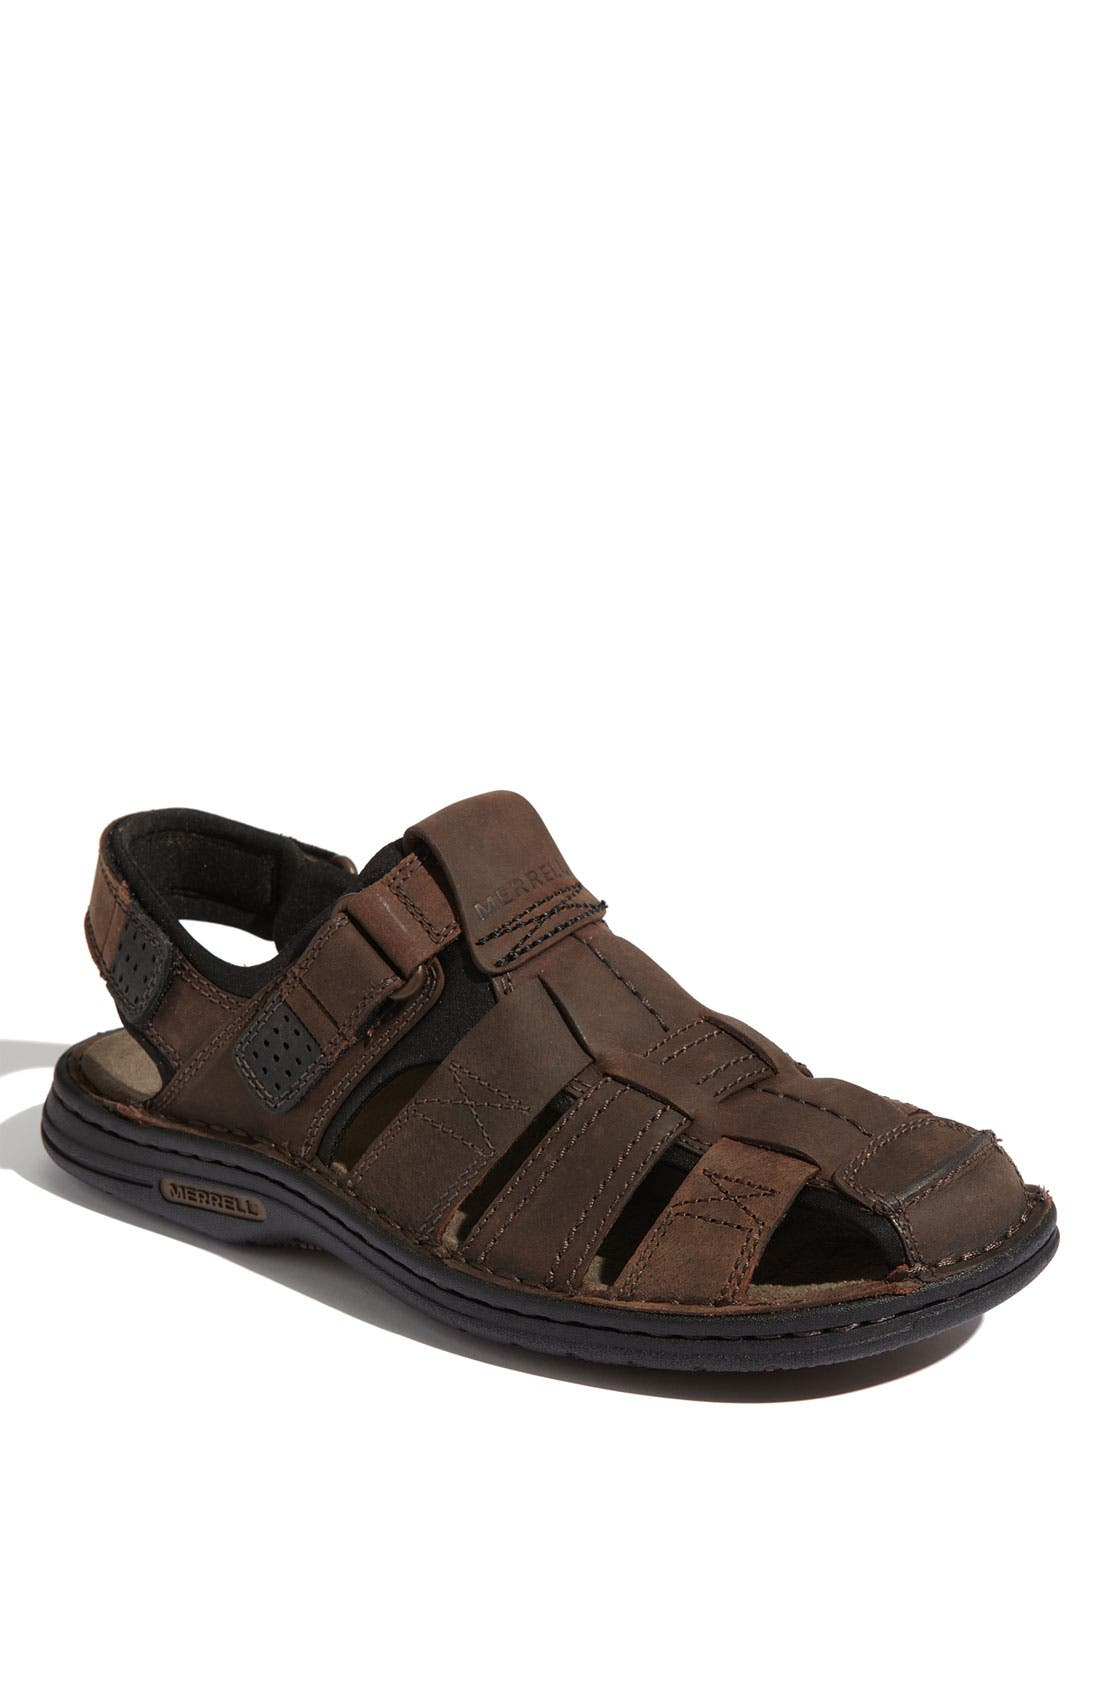 Alternate Image 1 Selected - Merrell 'World Midway' Sandal (Online Only)